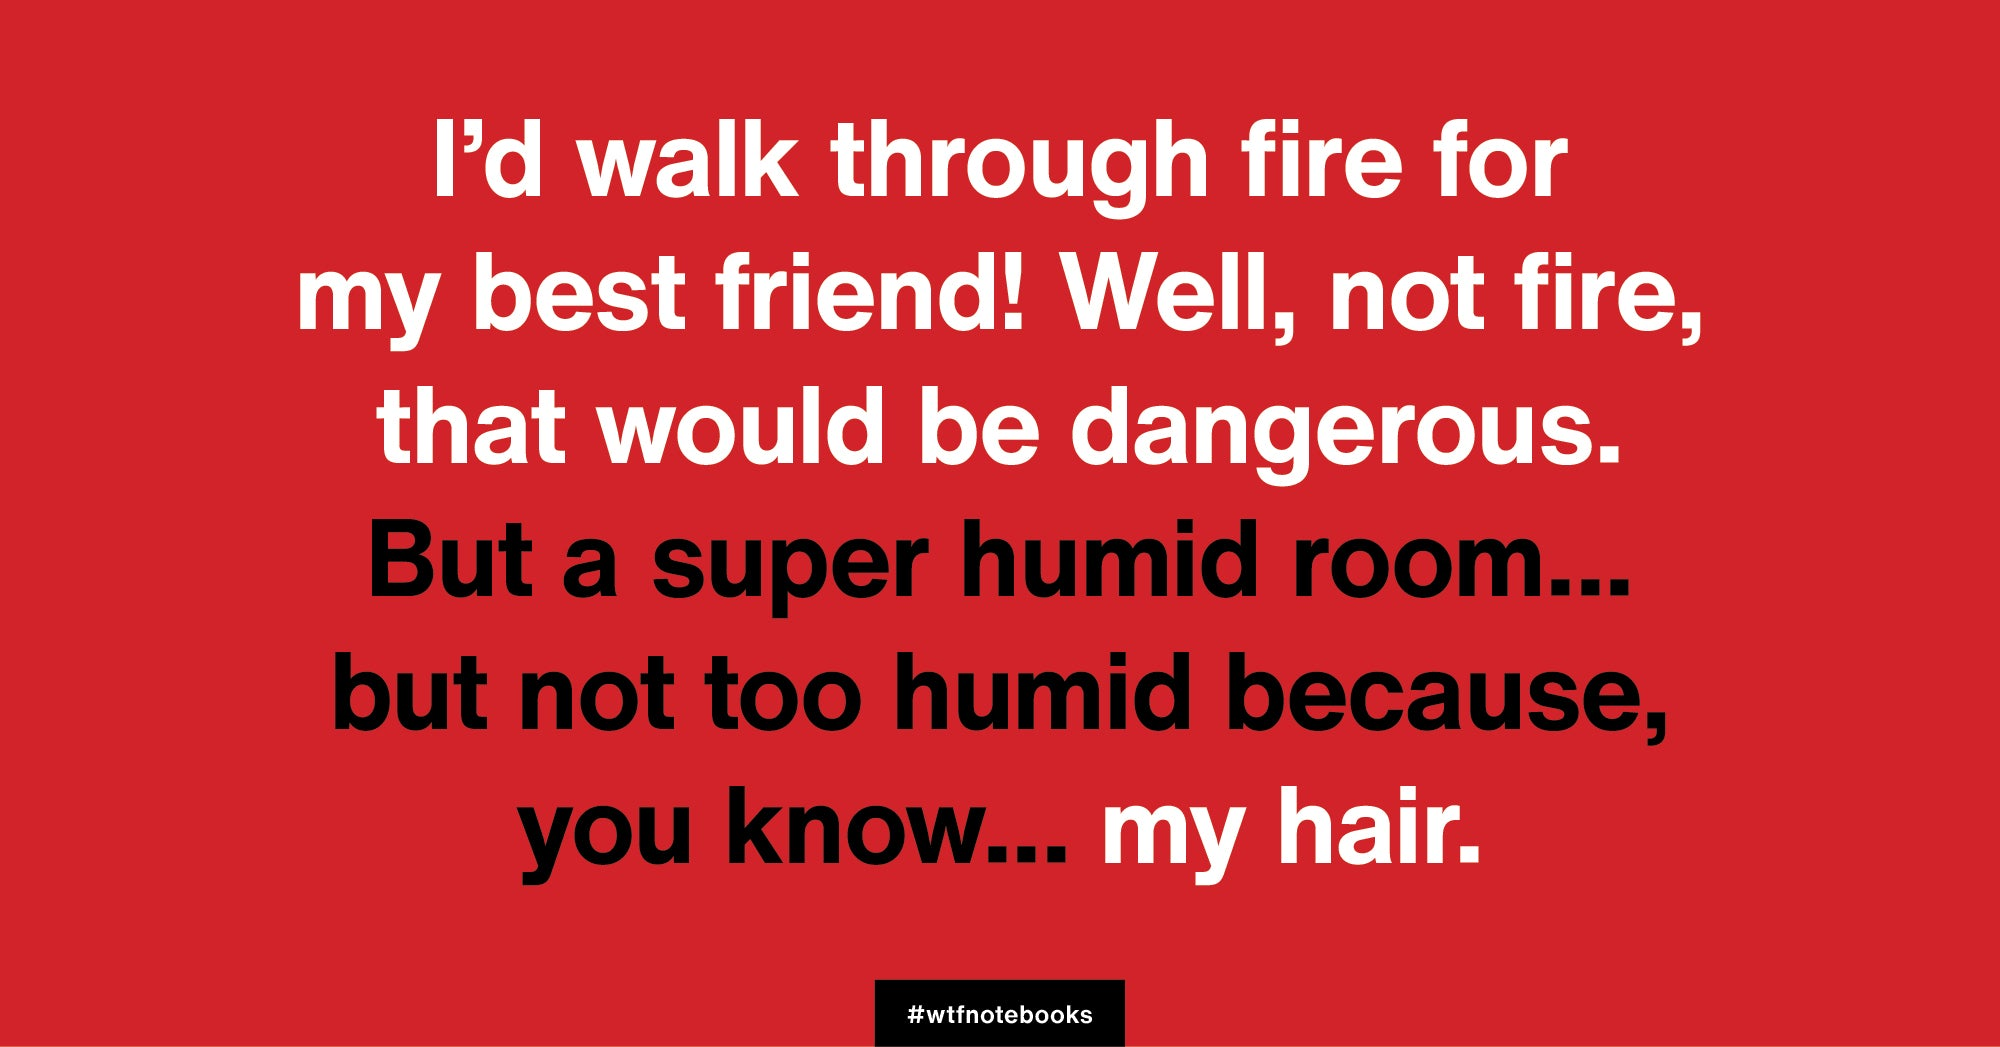 WTF Notebooks funny friendship title: Fire